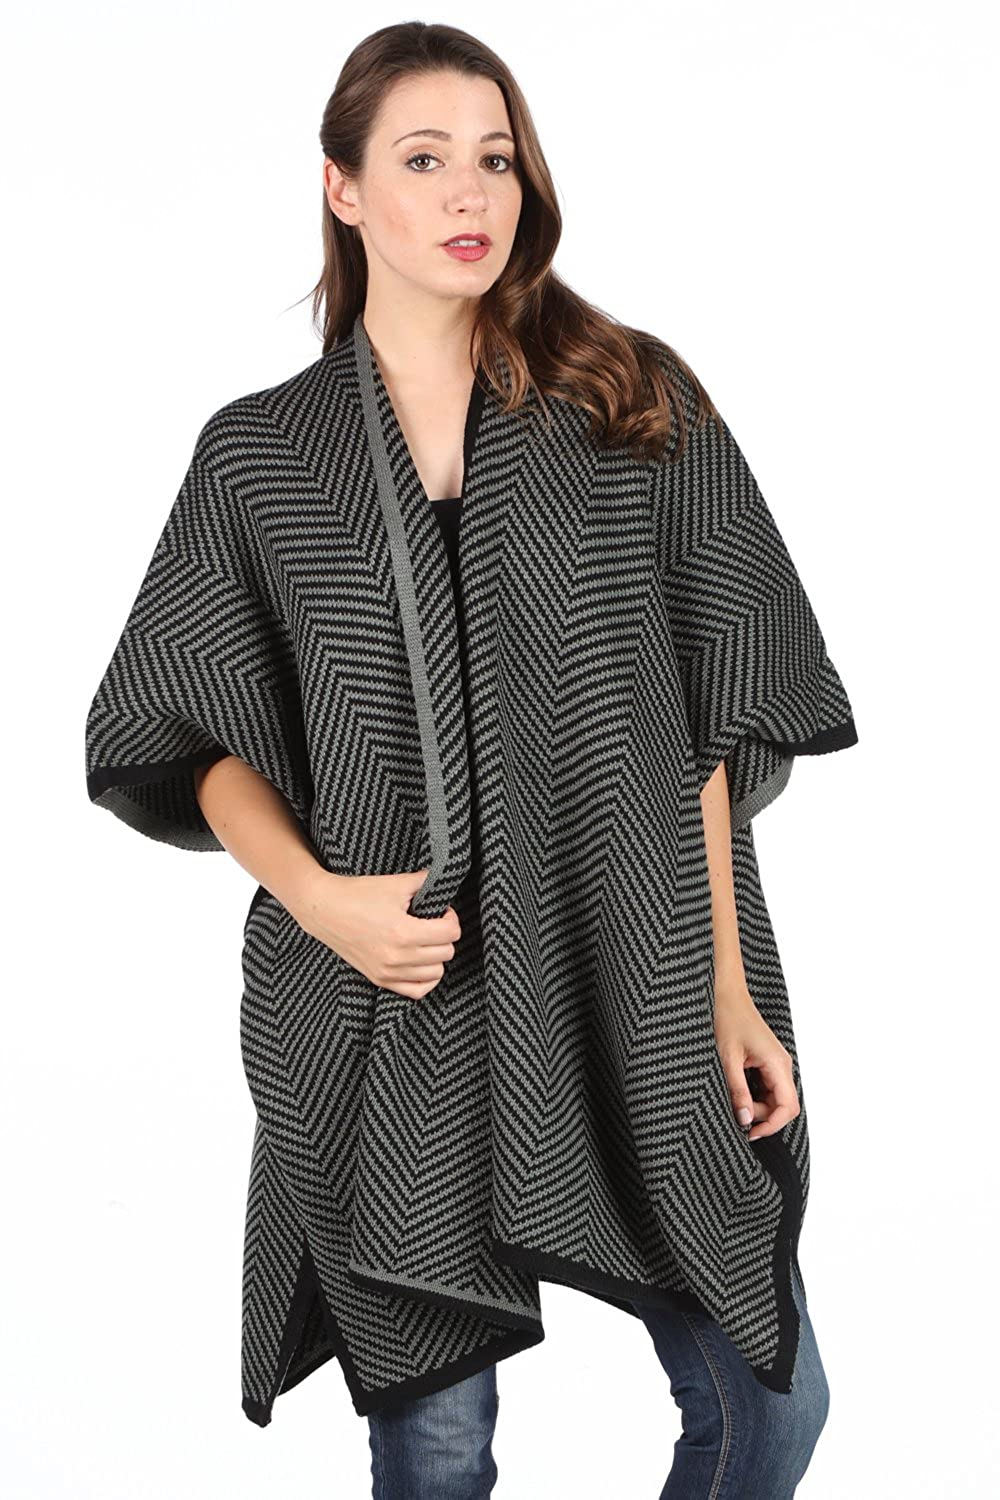 Chevron Effect Knit Cardigan poncho. (ONE SIZE, BLACK)